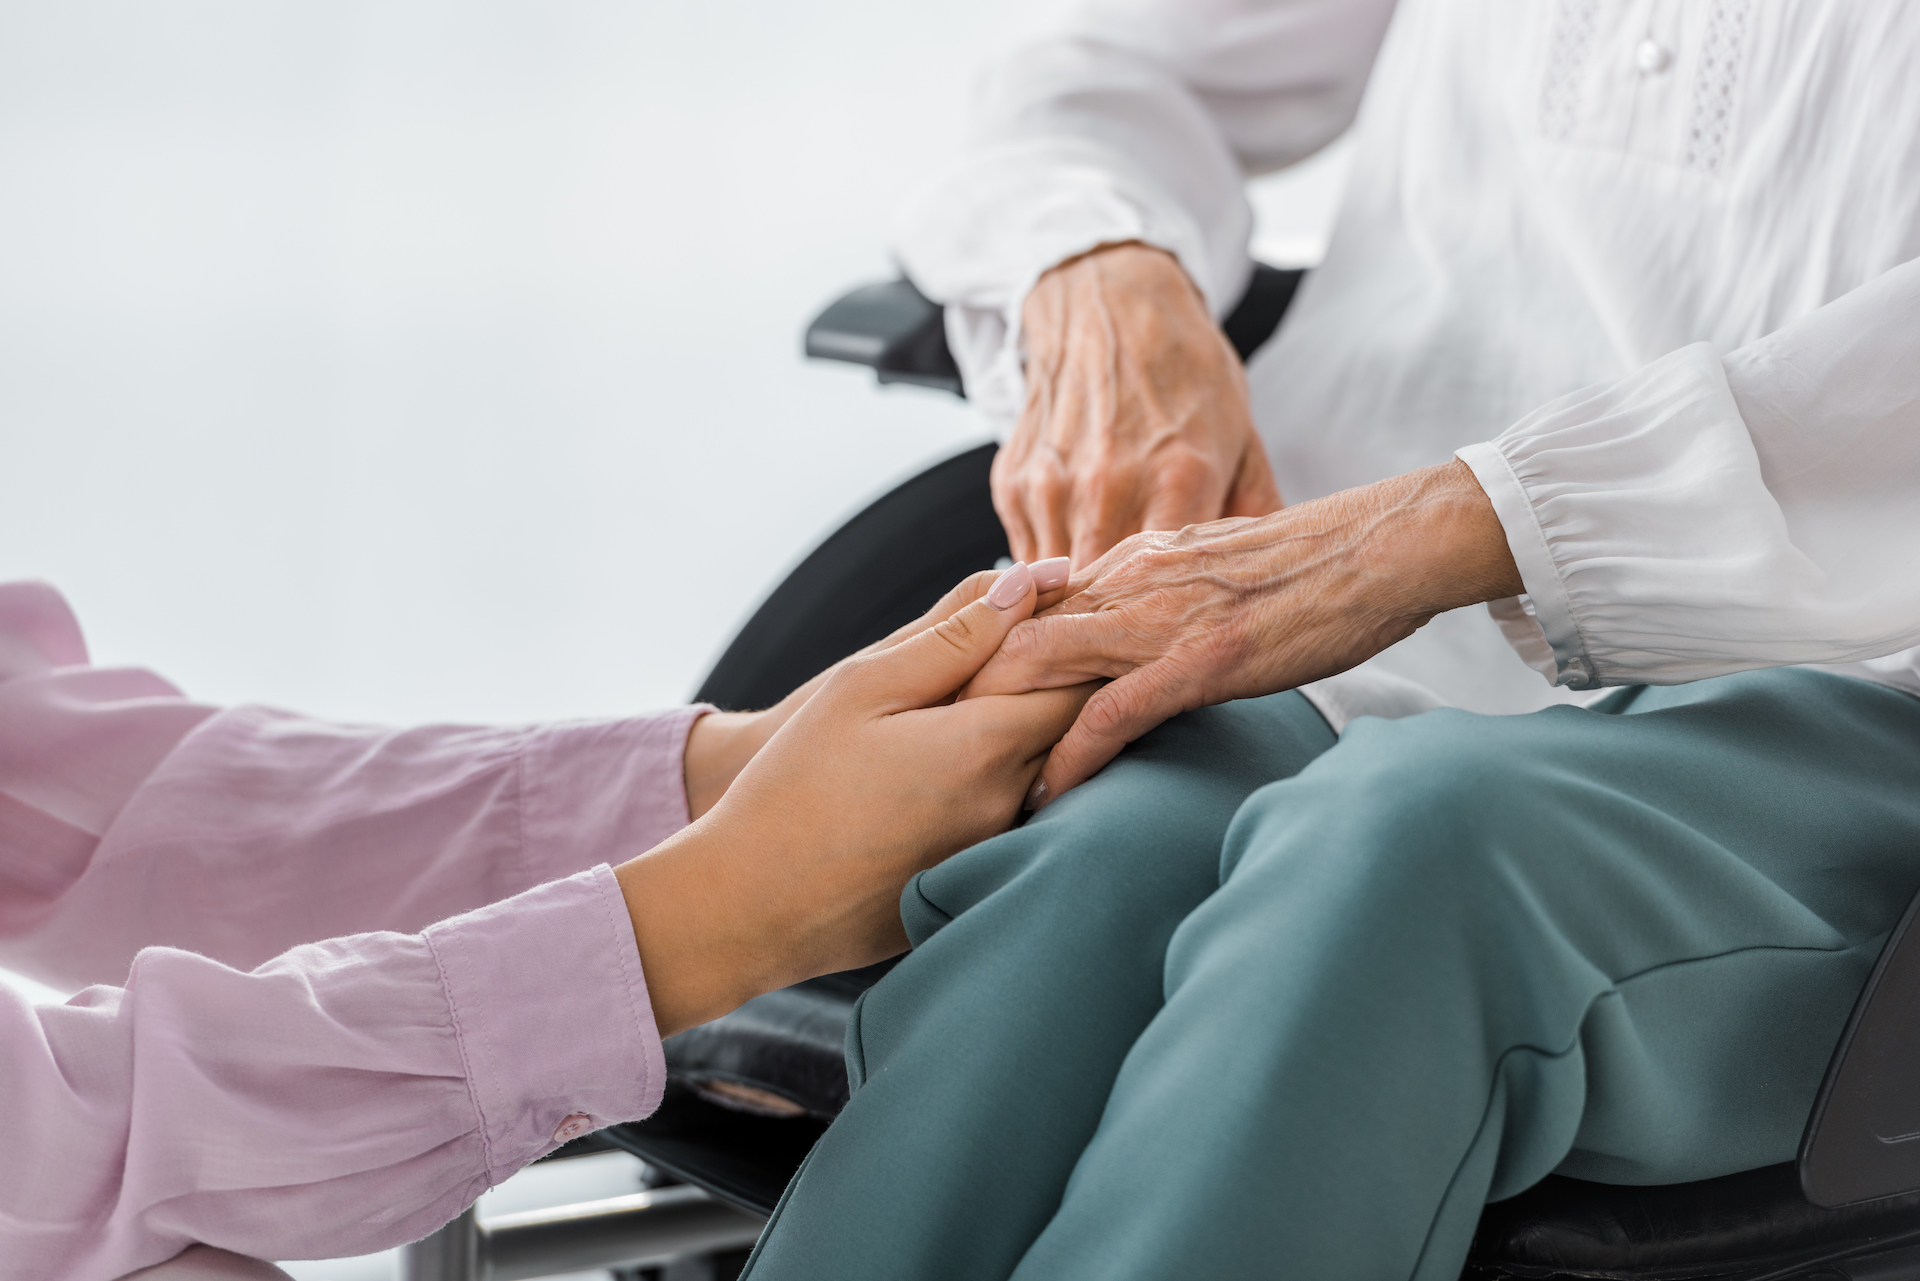 senior women holding hands - Personal Injury Attorney in Nashville - Wrongful Death Attorney, Truck Accident Lawyer, Car Accident Lawyer, and more | Meyers Injury Law